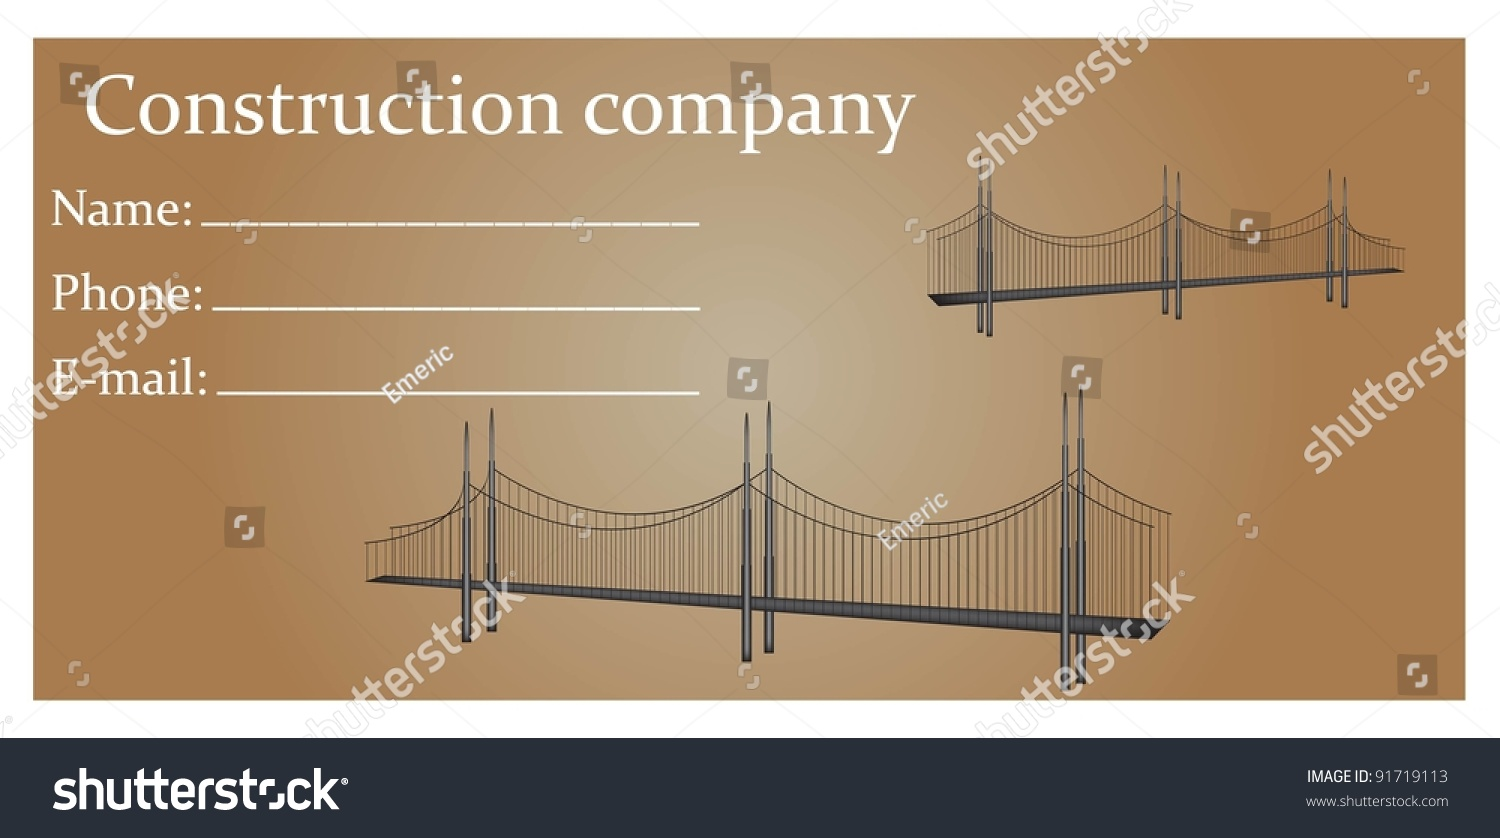 Business card construction companies stock vector 91719113 business card for construction companies magicingreecefo Images